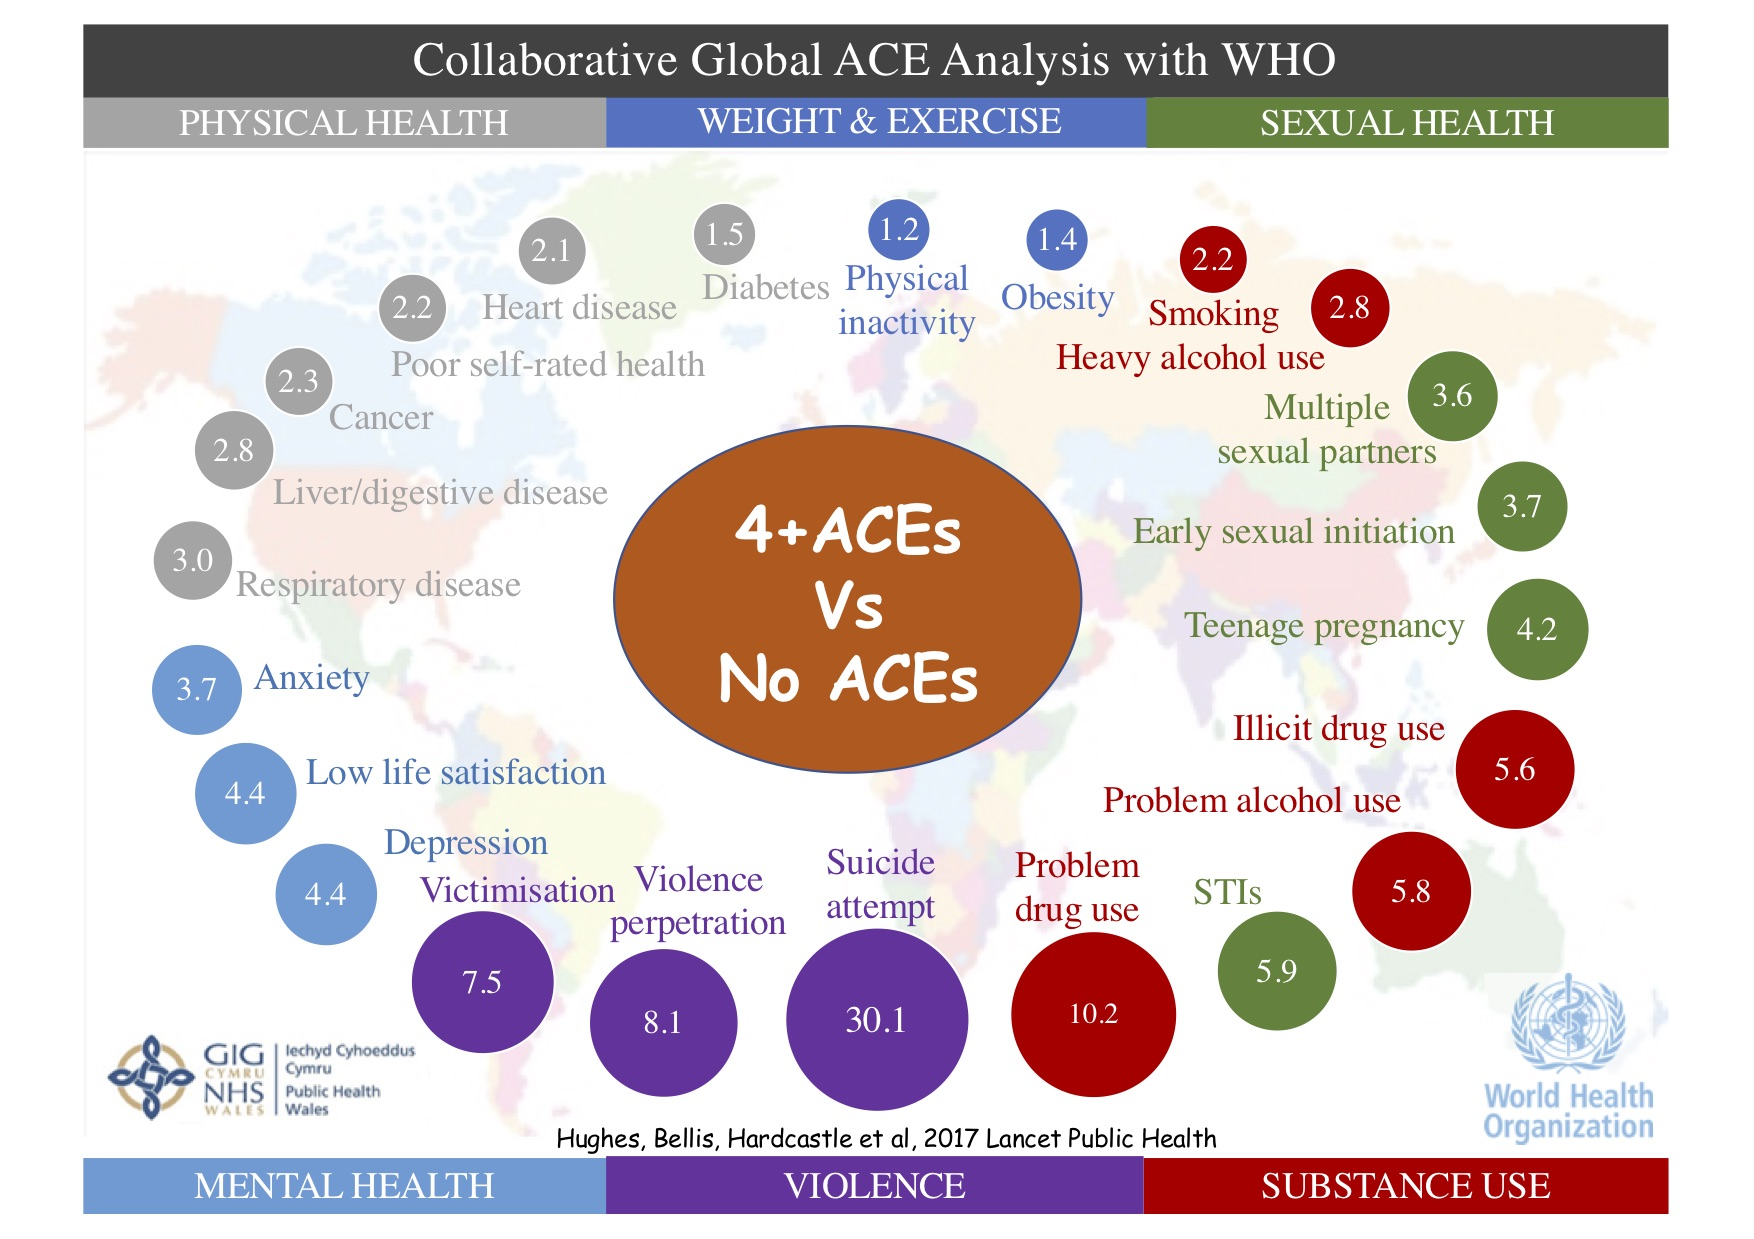 Adverse Childhood Experiences Study Tells Of Need For